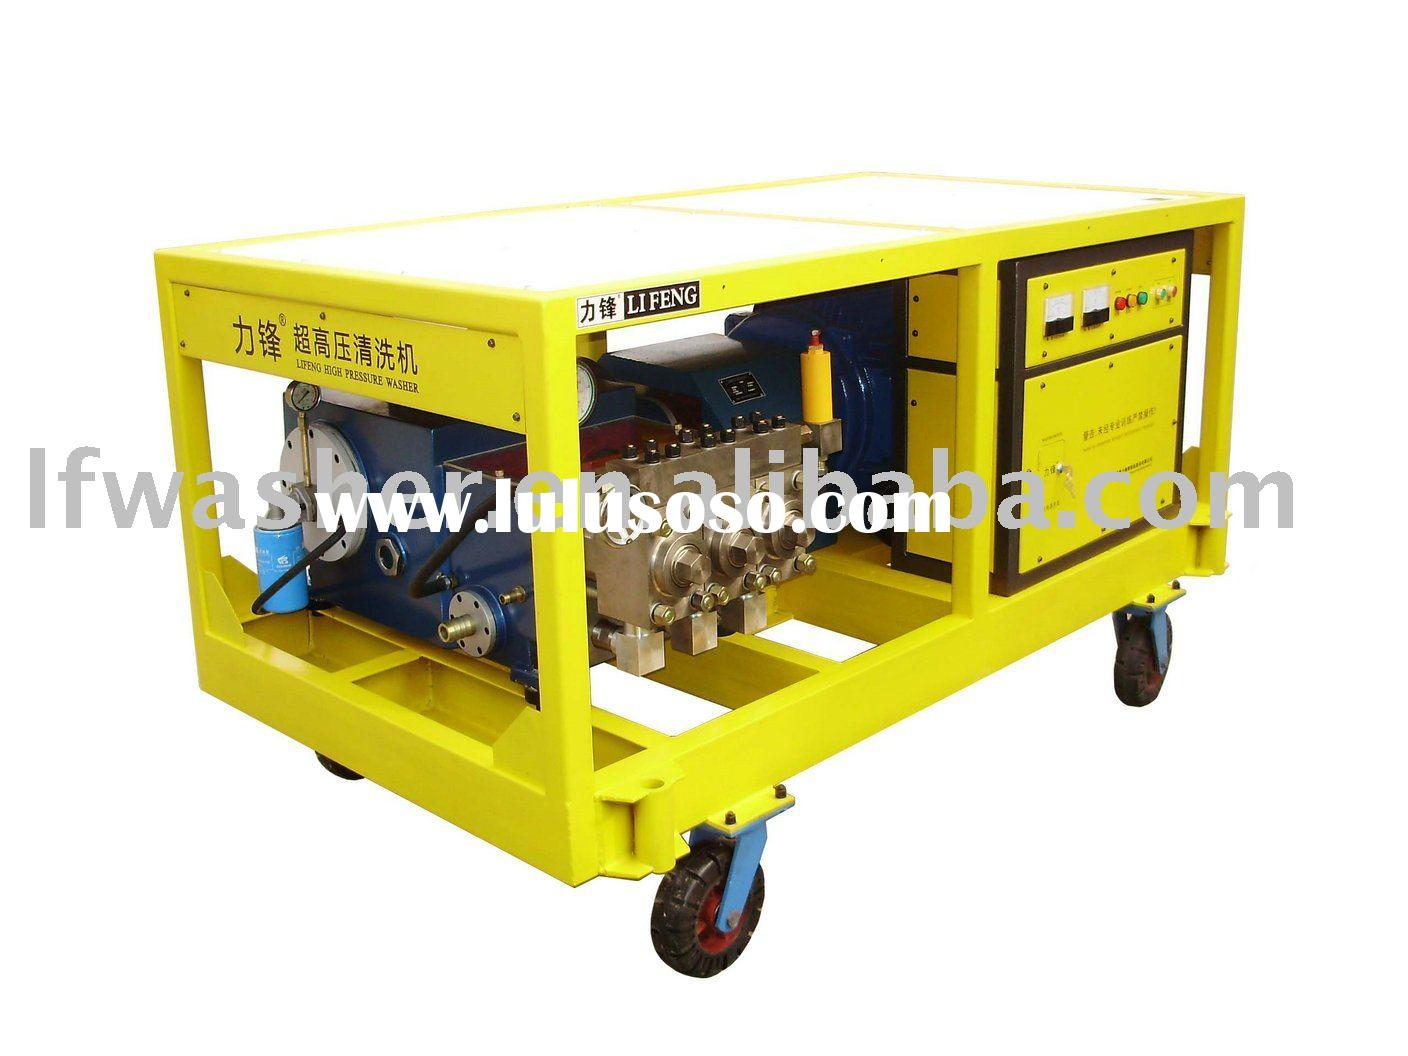 high pressure washer,sea water pump,water jet machine,ship cleaner,industrail washing equipment,gaso